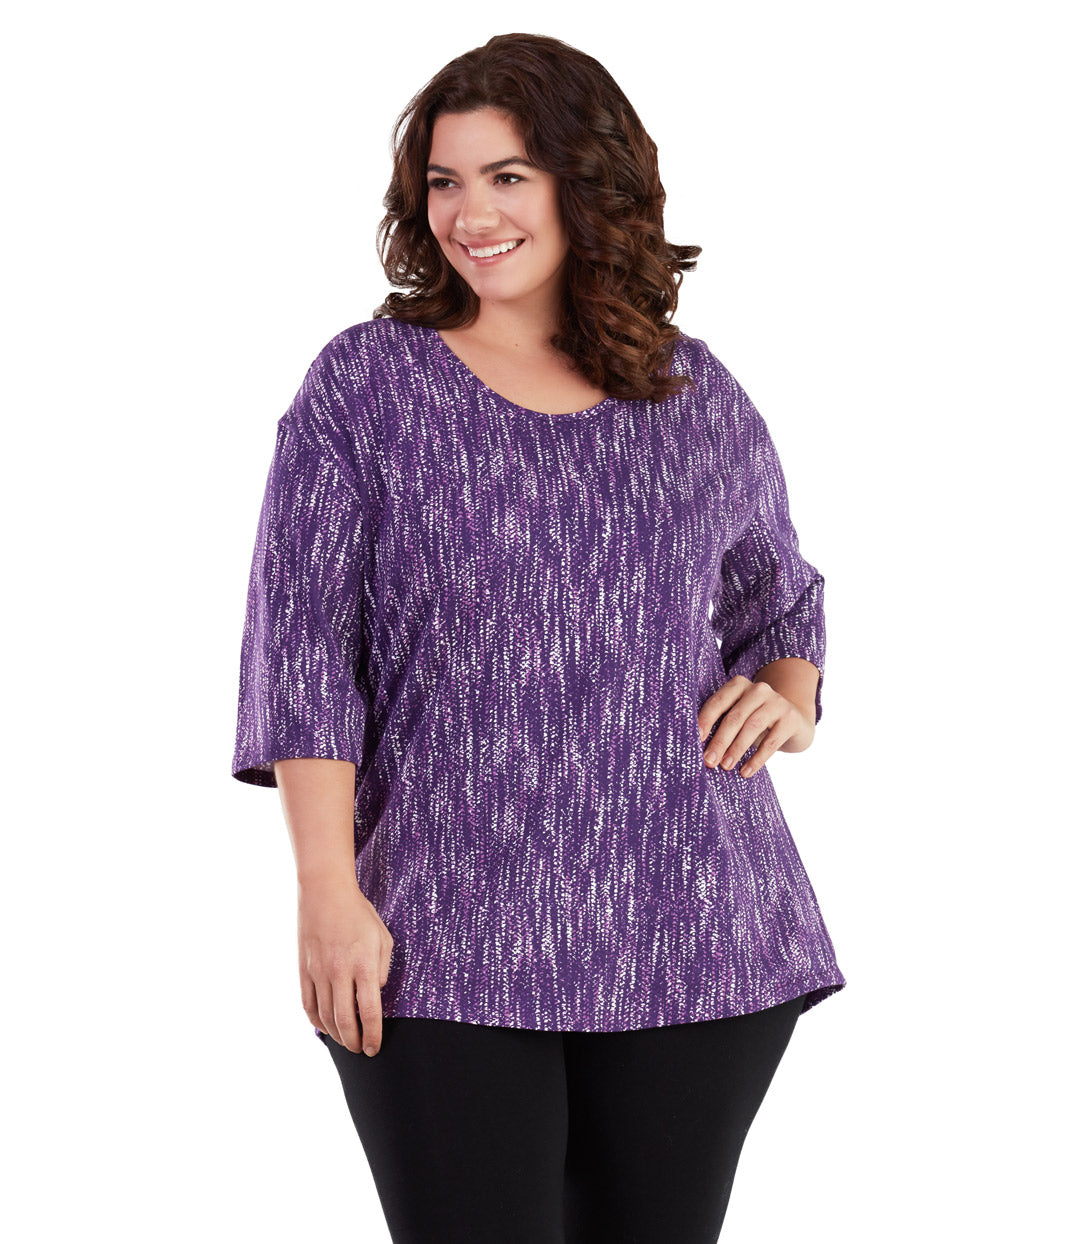 c00052ed09 Stretch Naturals 3 4 Sleeve Tunic